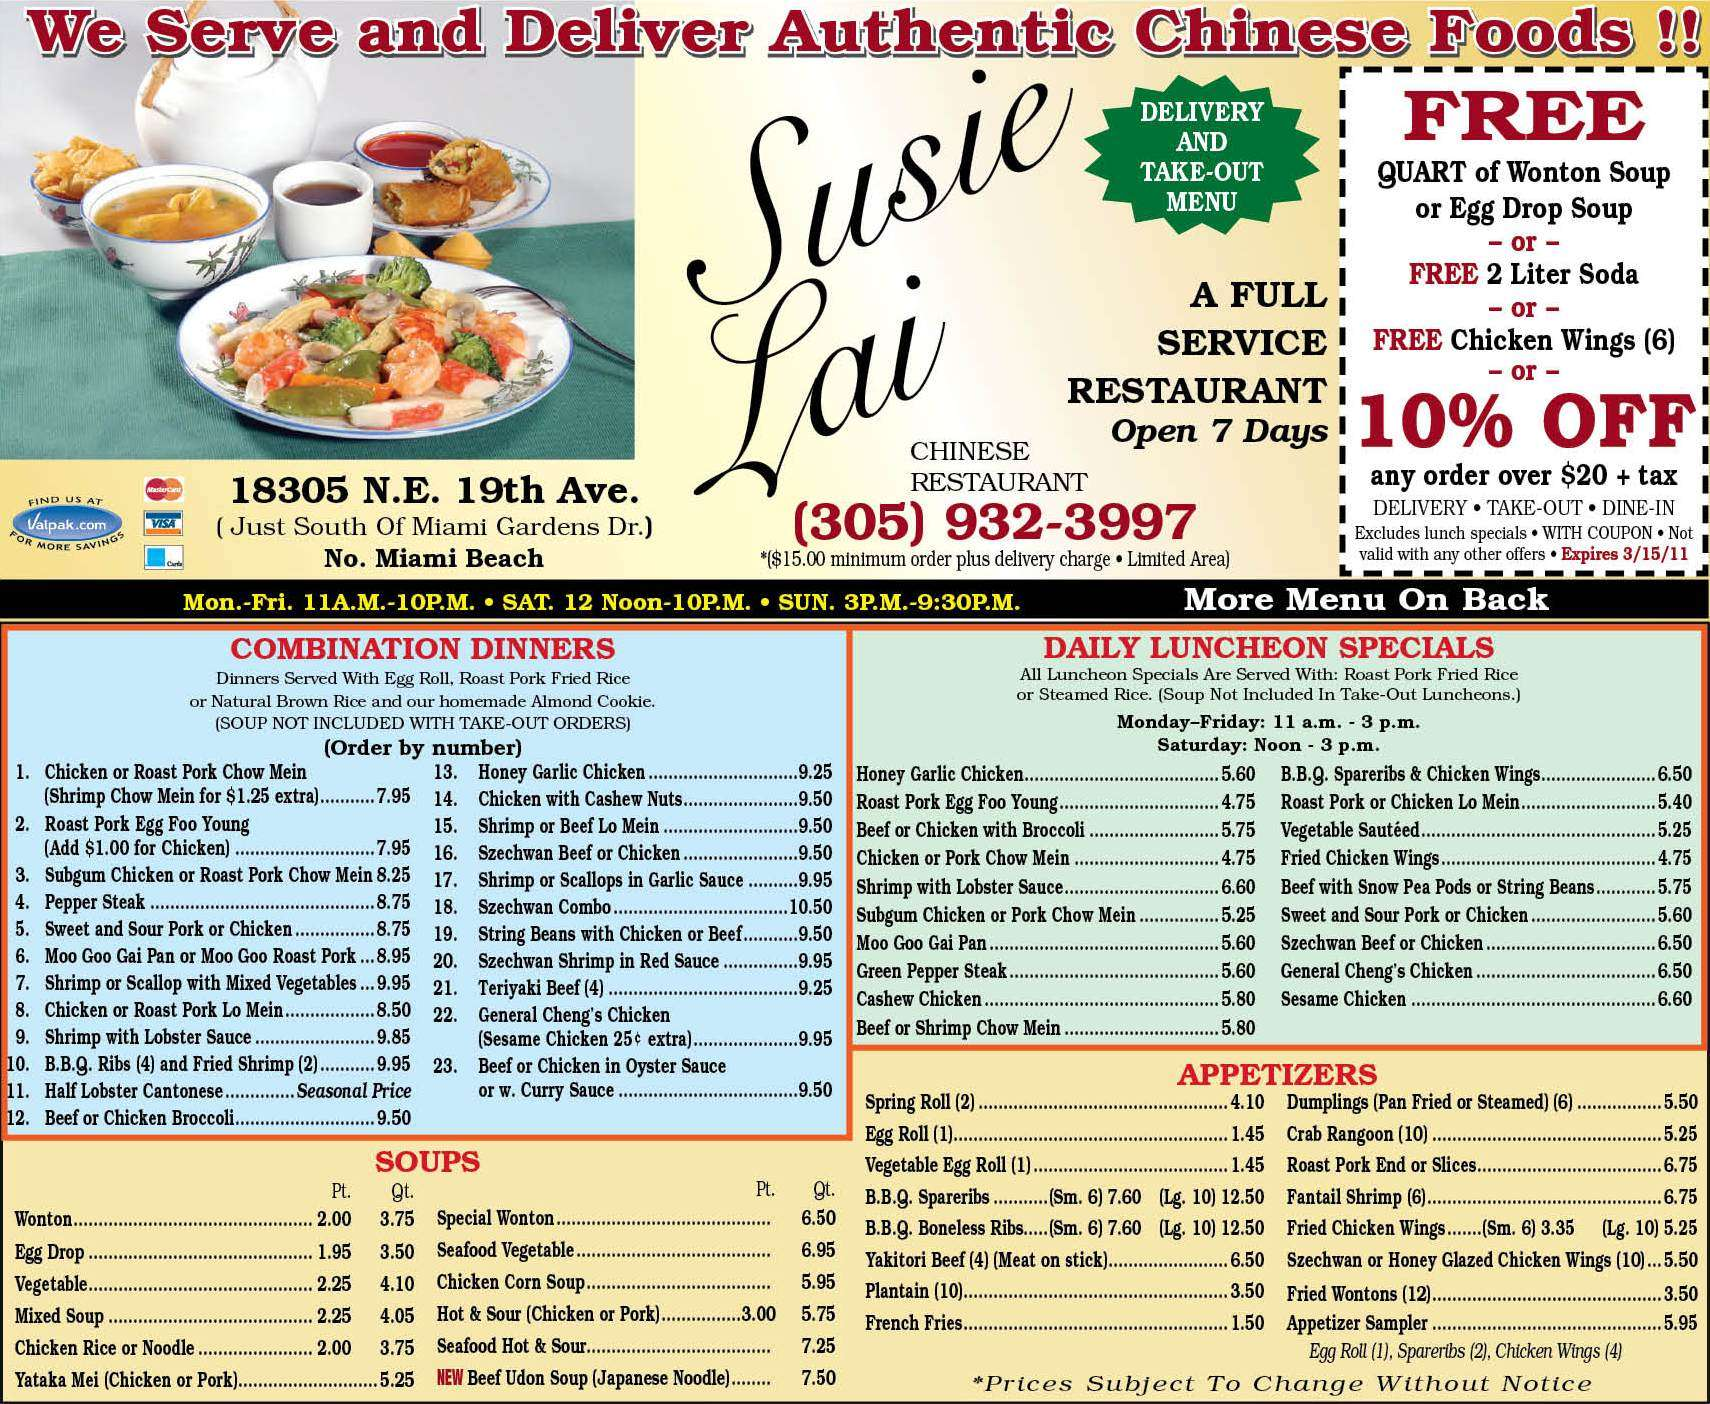 Chinese Delivery Food North Miami Beach